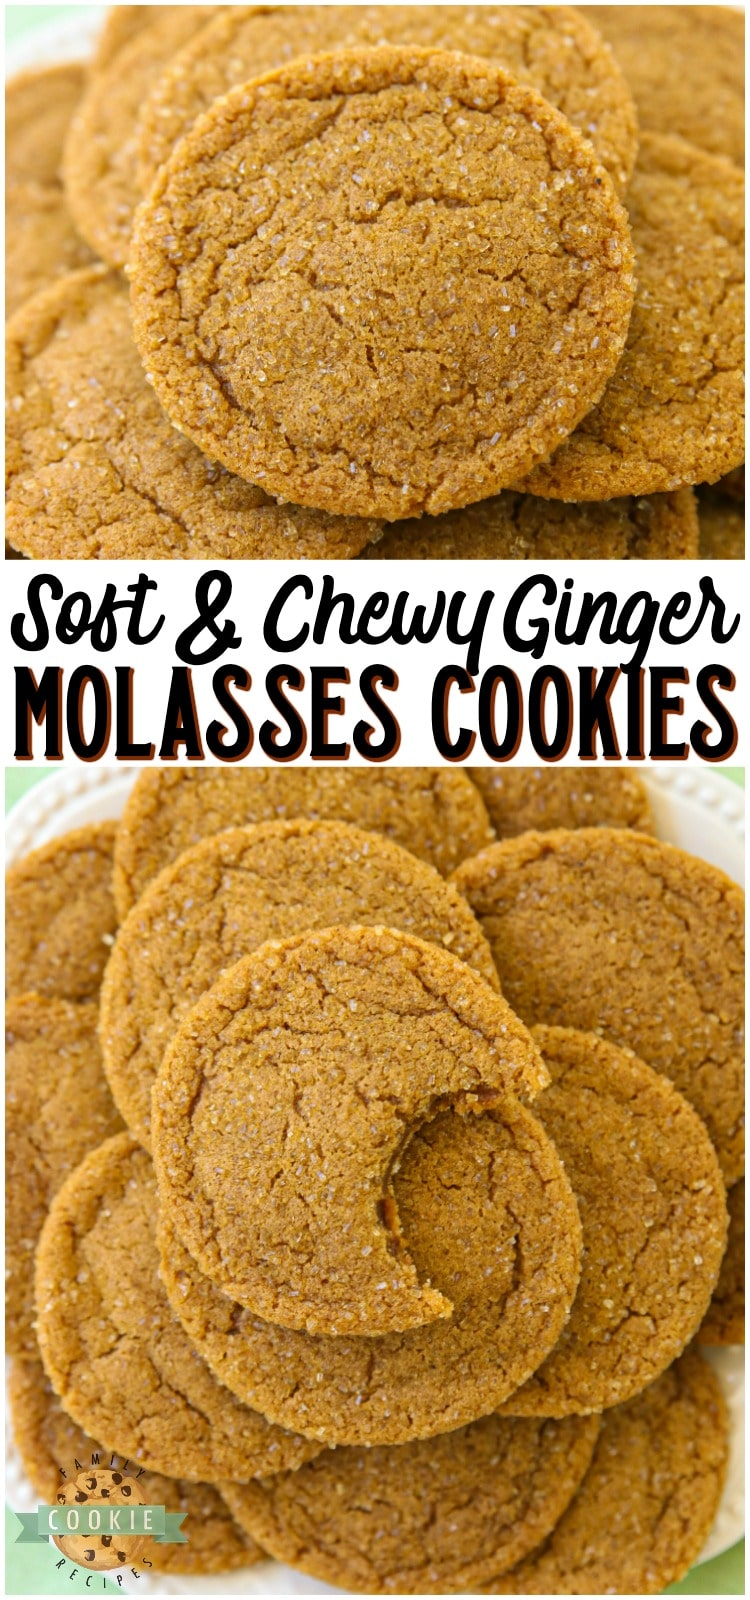 Soft & Chewy Ginger Molasses Cookies are perfect for the holidays! Lovely combination of spices give these Molasses Cookies incredible flavor and texture. via @buttergirls